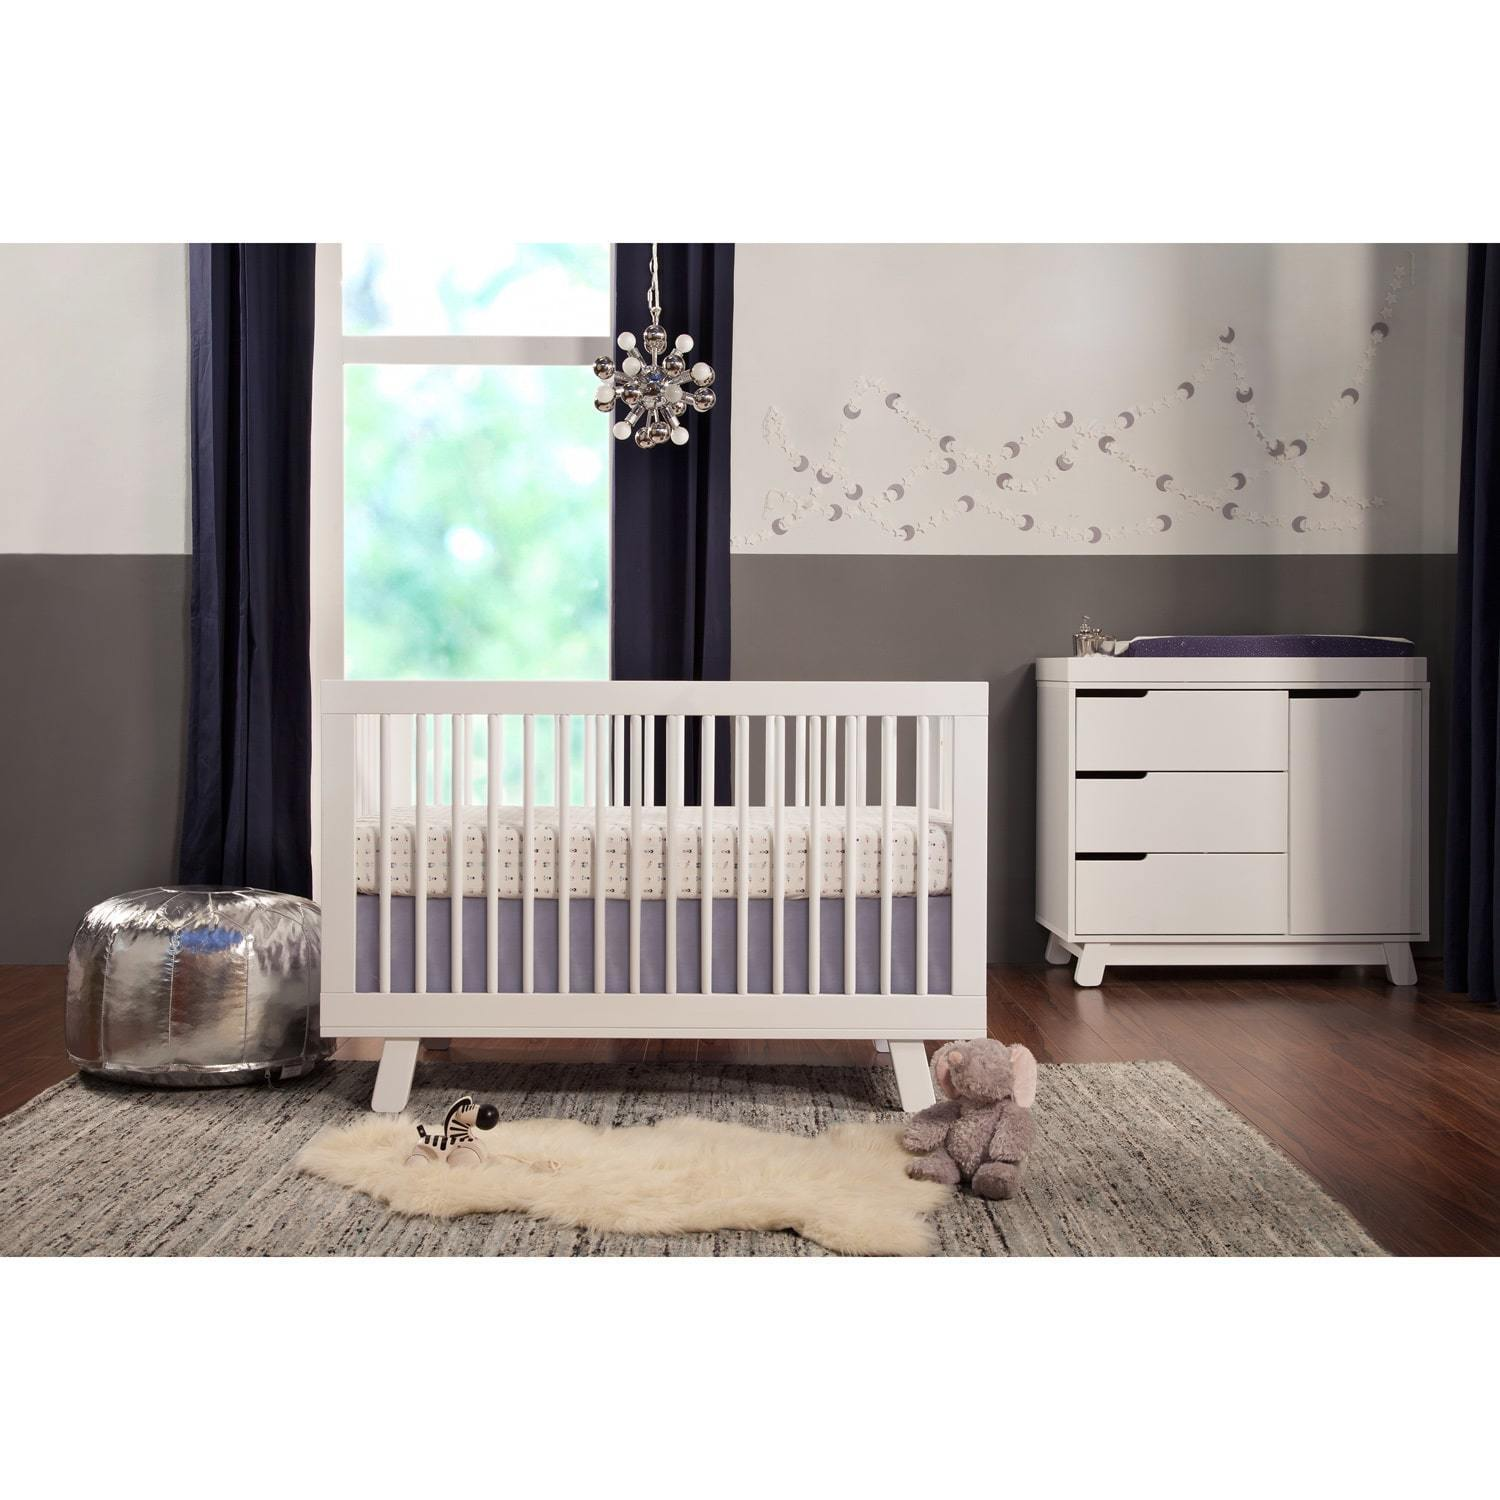 crib babyletto lolly with com convertible cribs dp in kit amazon conversion natural bed white sp toddler